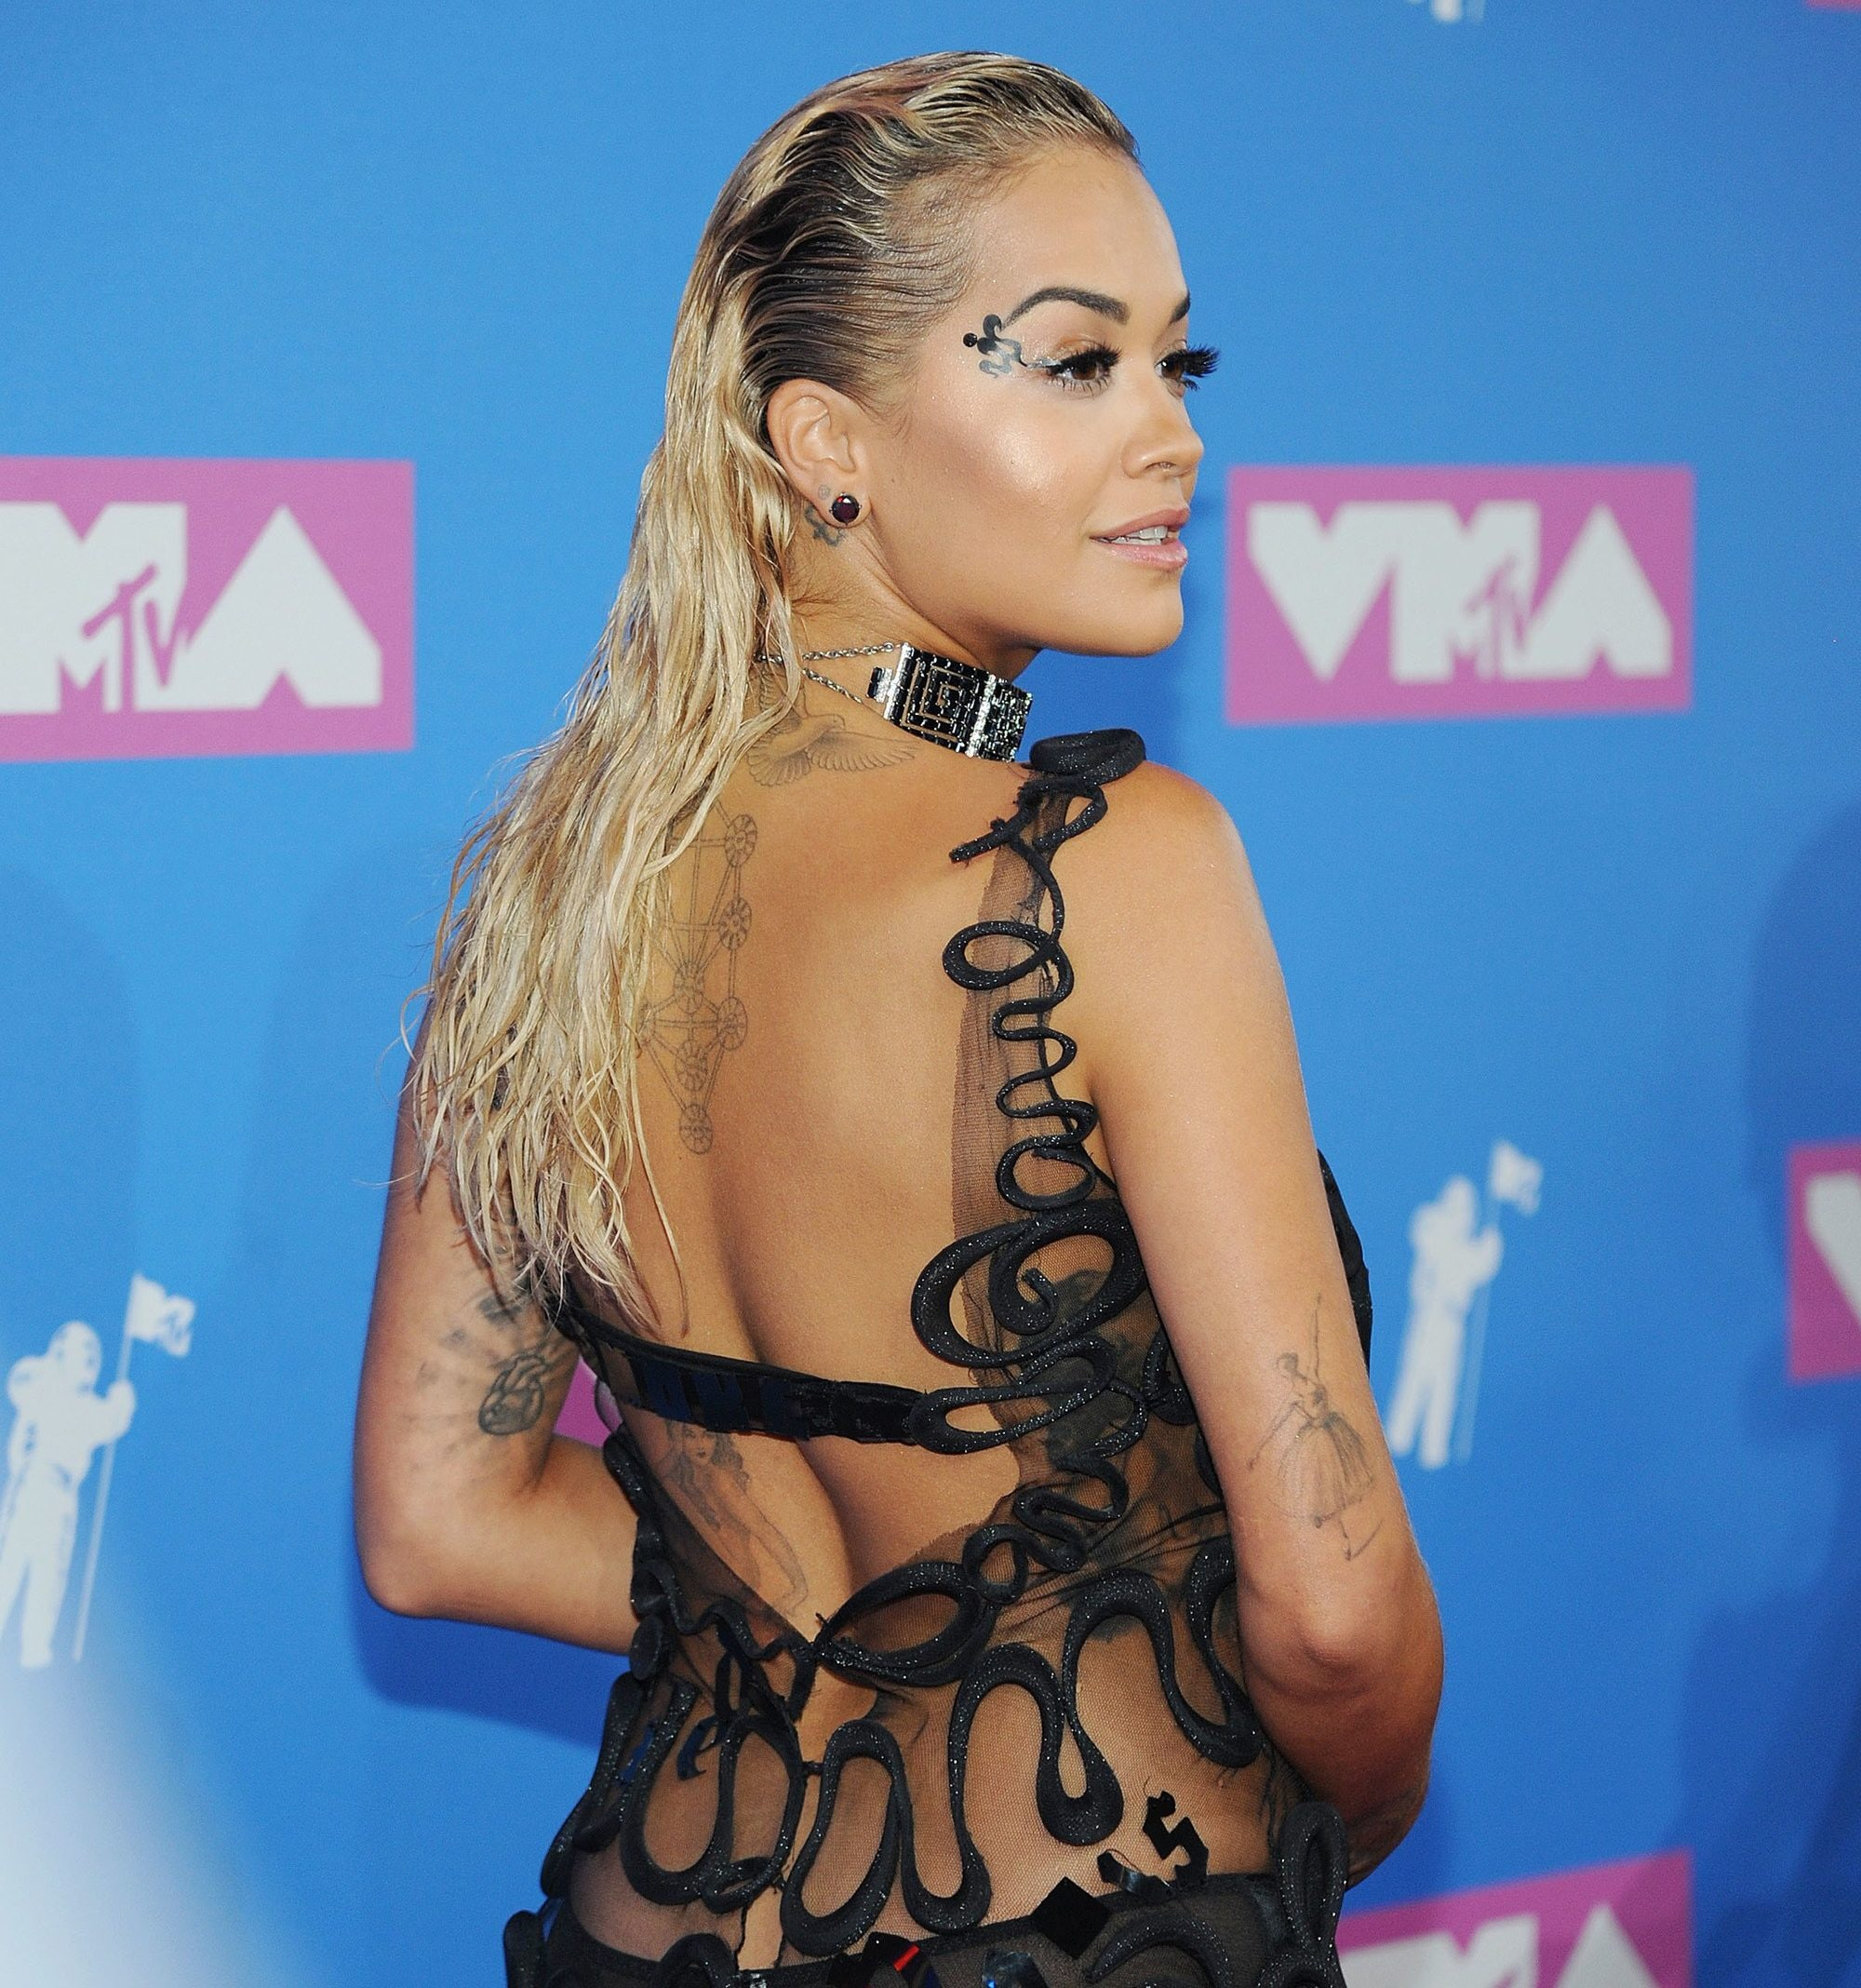 Red carpet hairstyles: Rita Ora with bleached blonde wet look hair on the VMA red carpet.